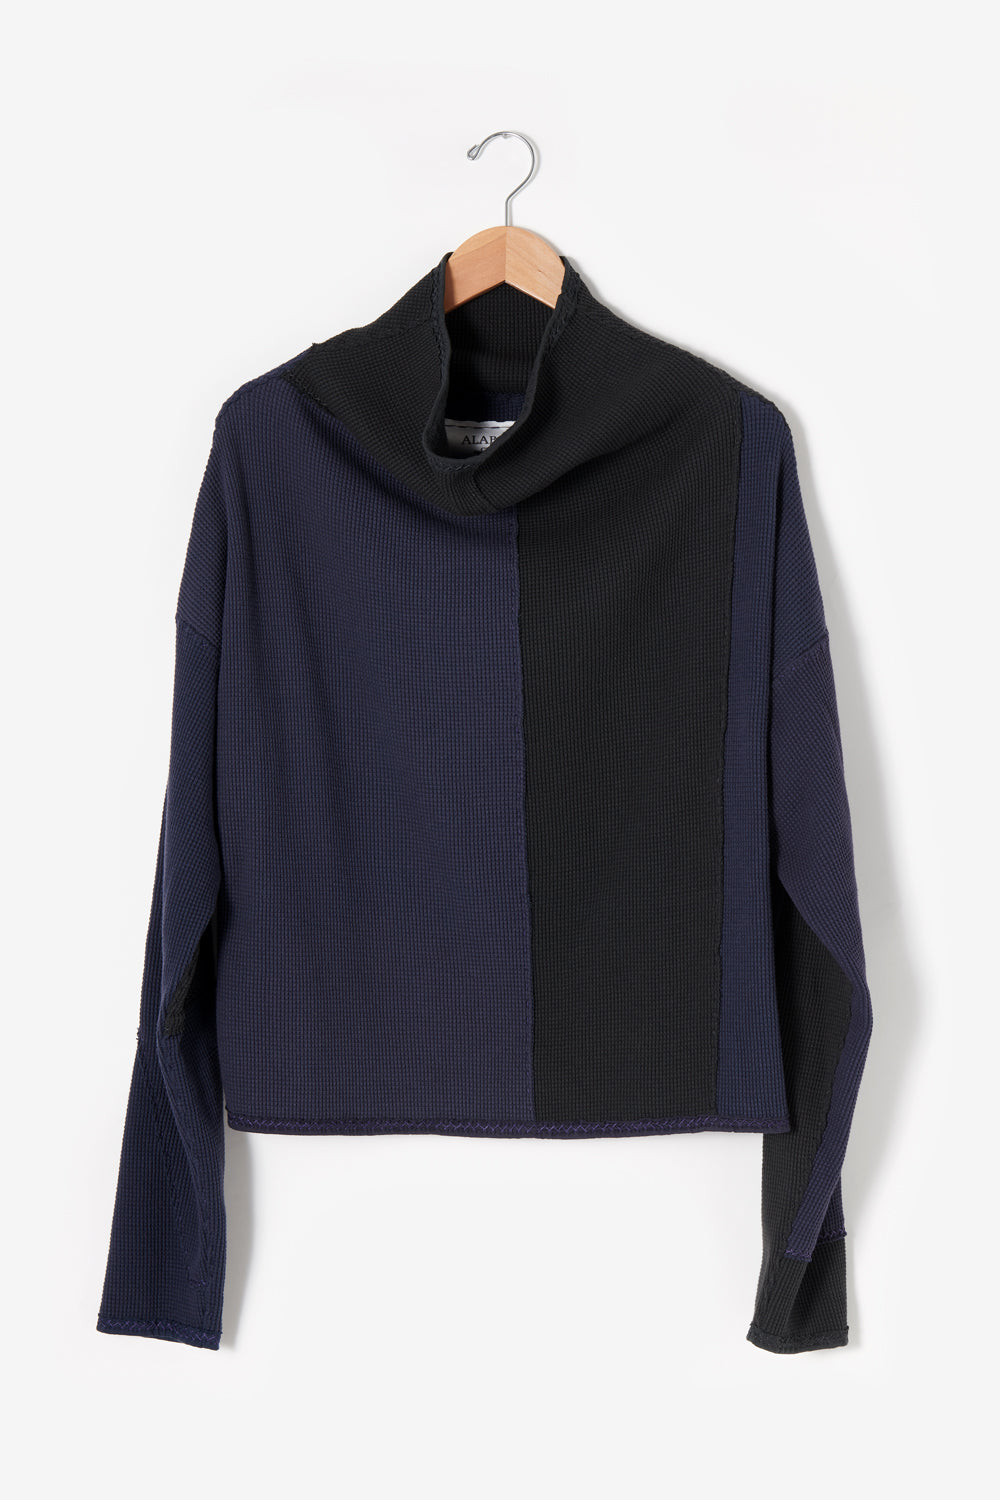 Alabama Chanin Artisan Designed Zero Waste Waffle Sweatshirt in Back and Navy 100% Organic Cotton Waffle Knit Sewn by Artisans One-of-a-Kind Designs 30465